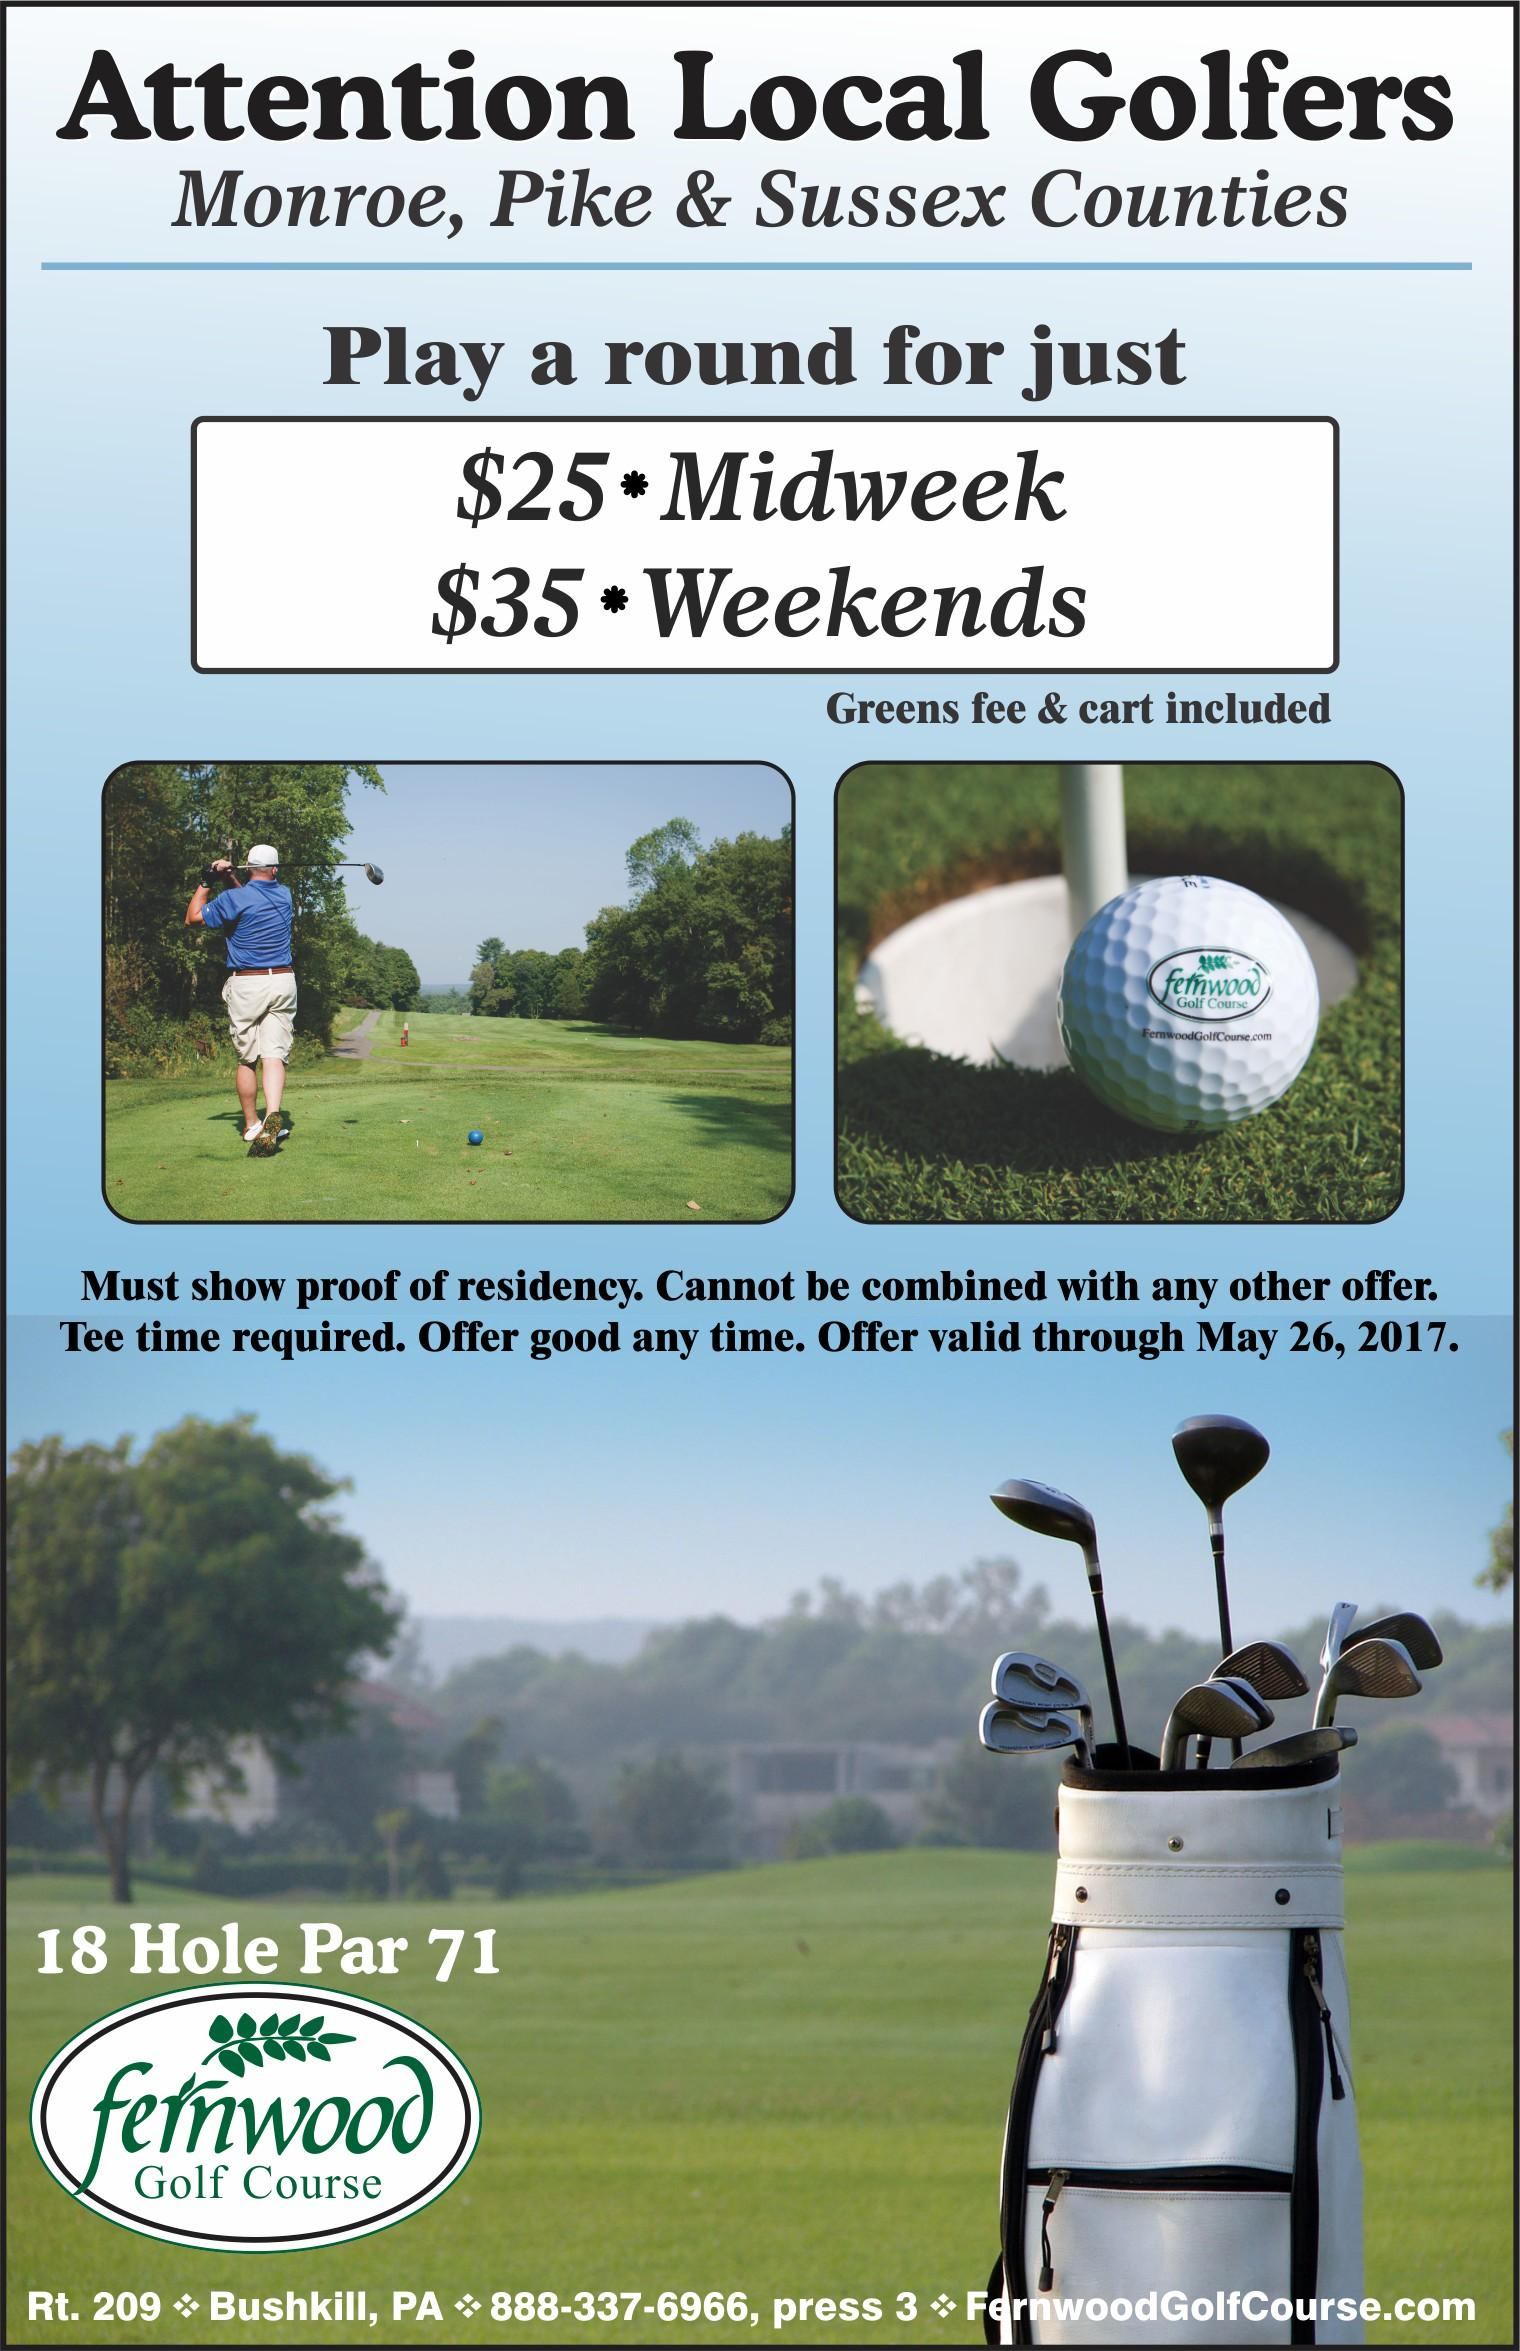 Local Golfers - Monroe, Pike & Sussex Counties